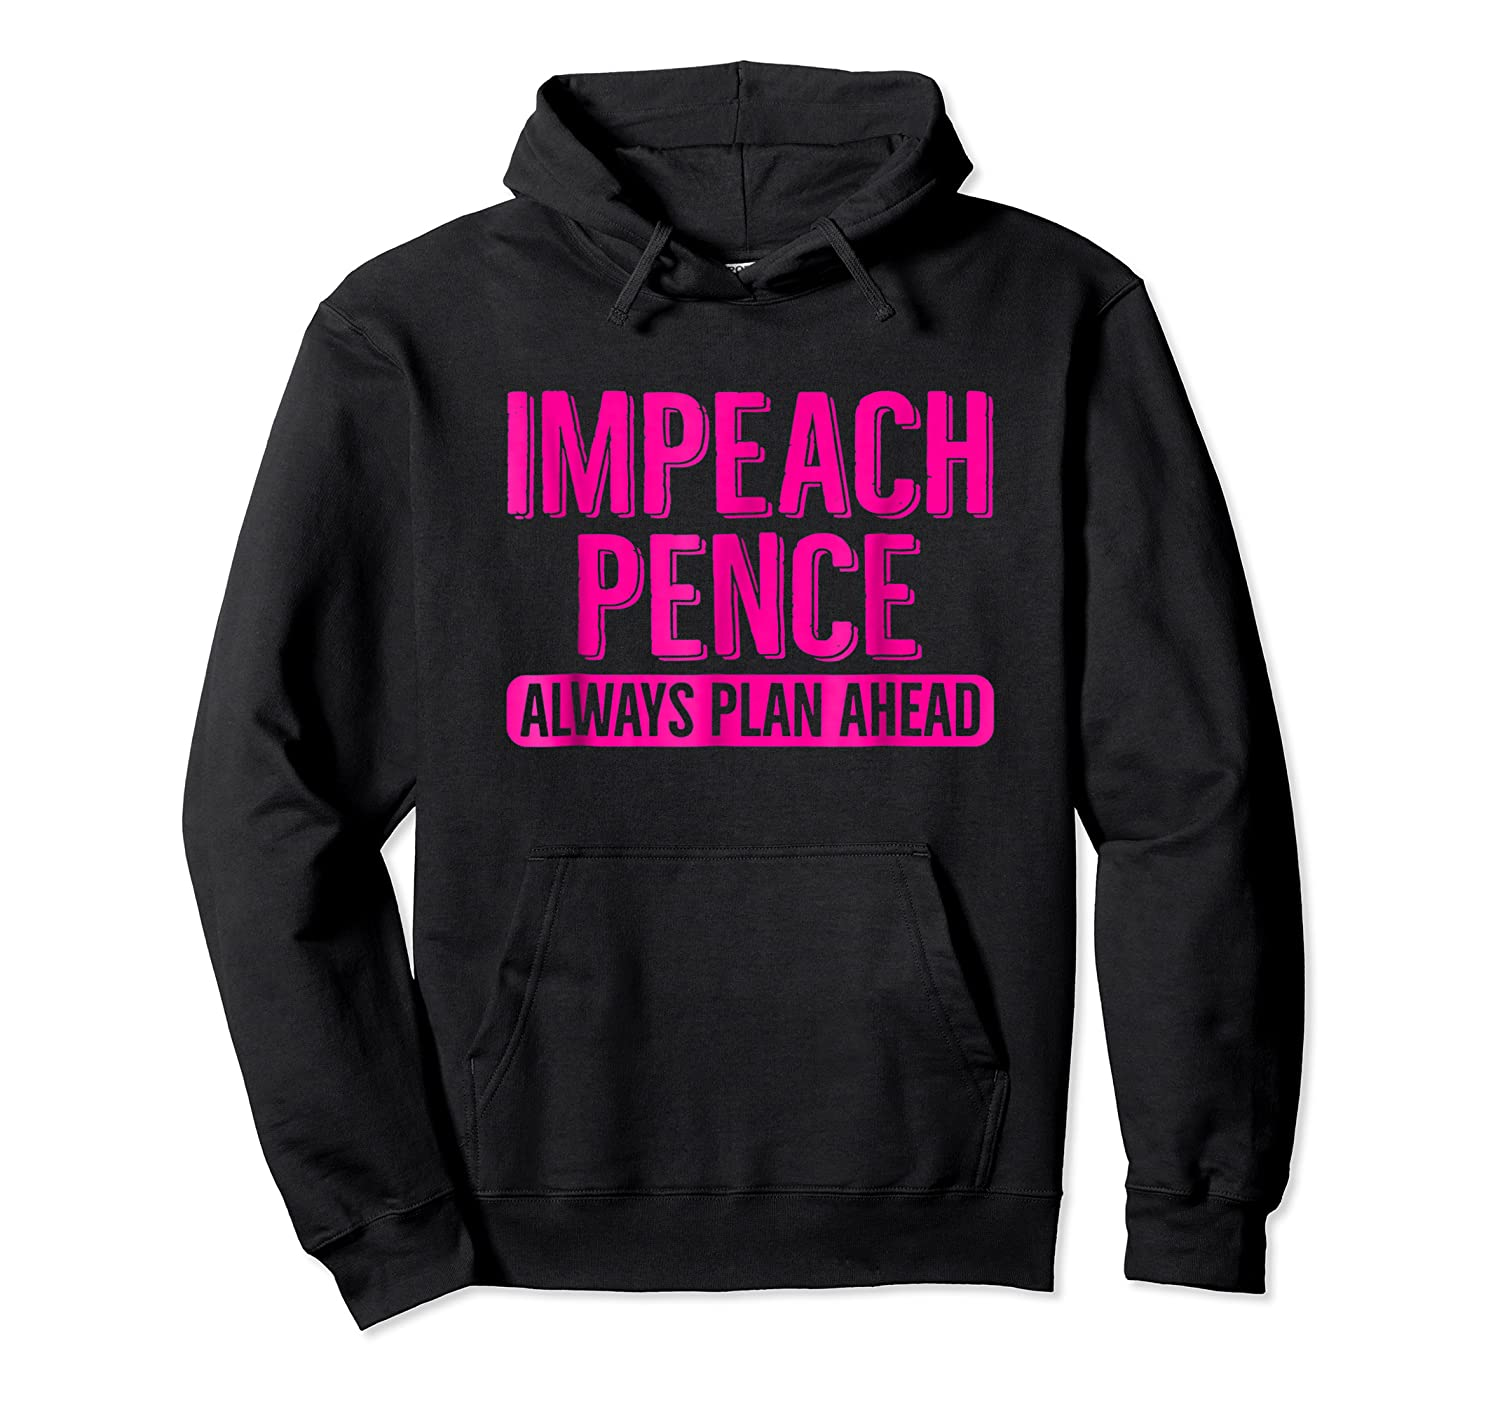 Pink Impeach Vice President Mike Pence T Shirt Plan Ahead Unisex Pullover Hoodie